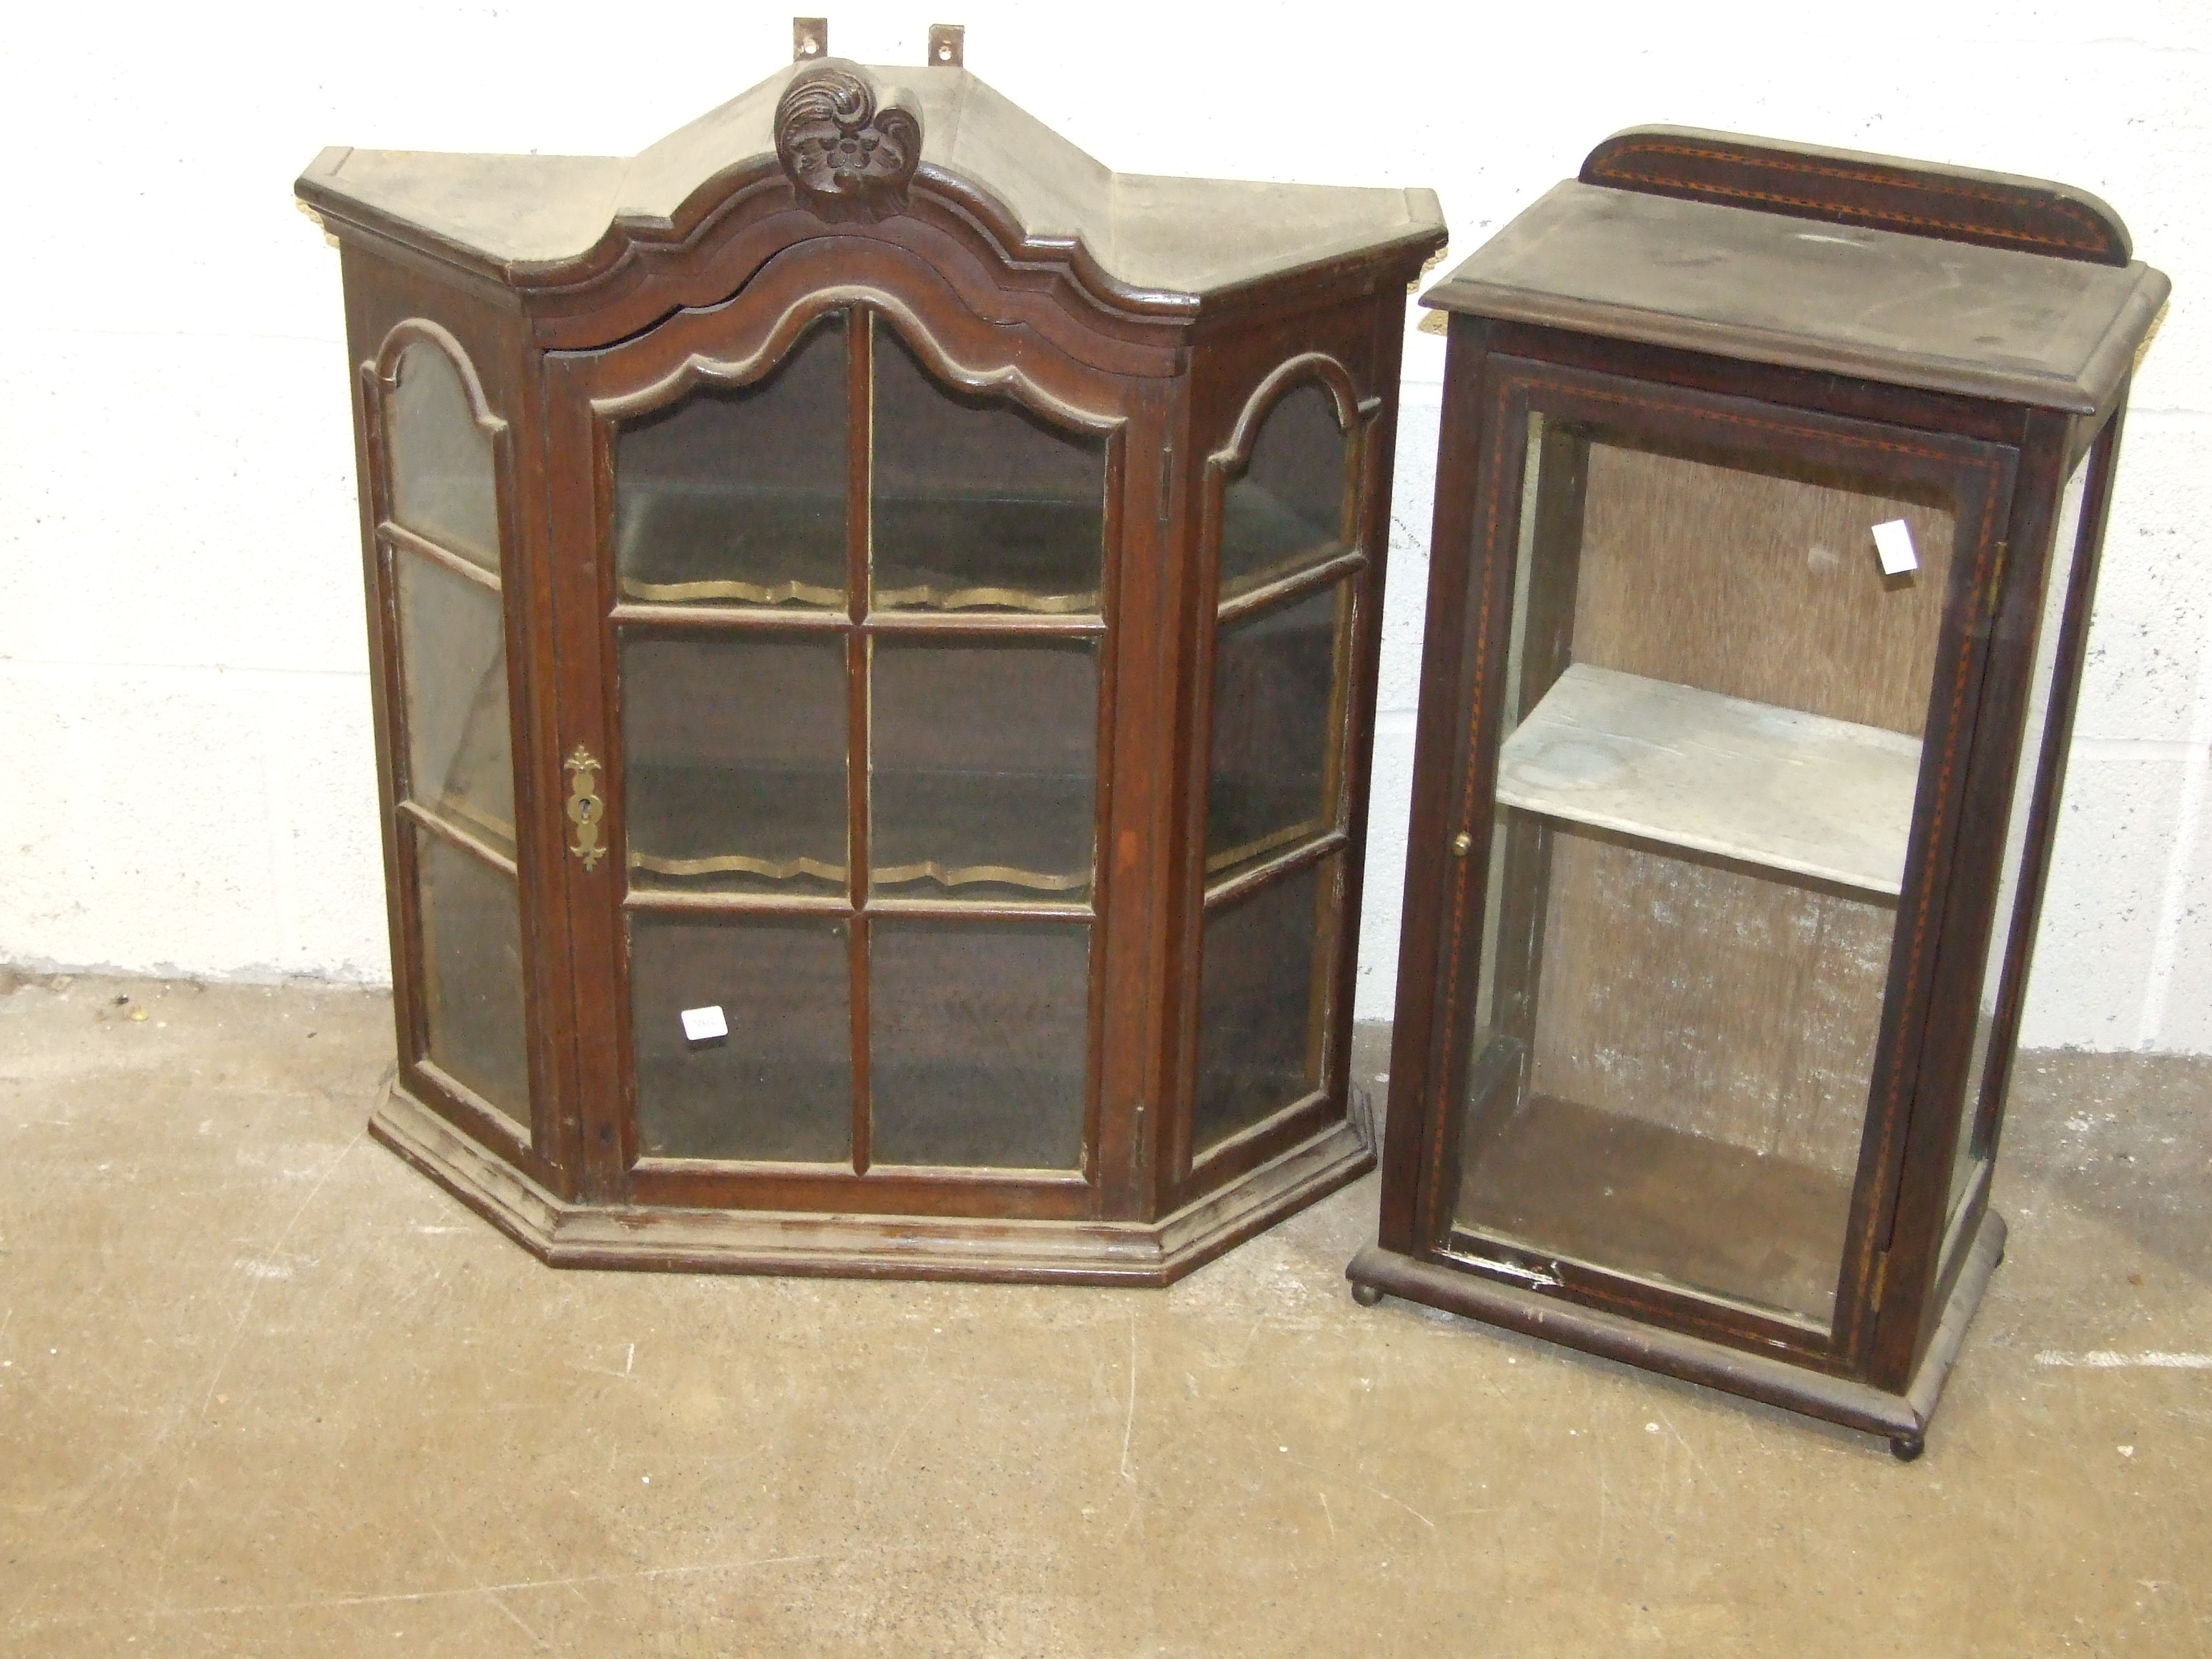 Lot 34 - A small glazed oak wall cabinet in the Dutch style, 64cm wide, 73cm high and an Edwardian small